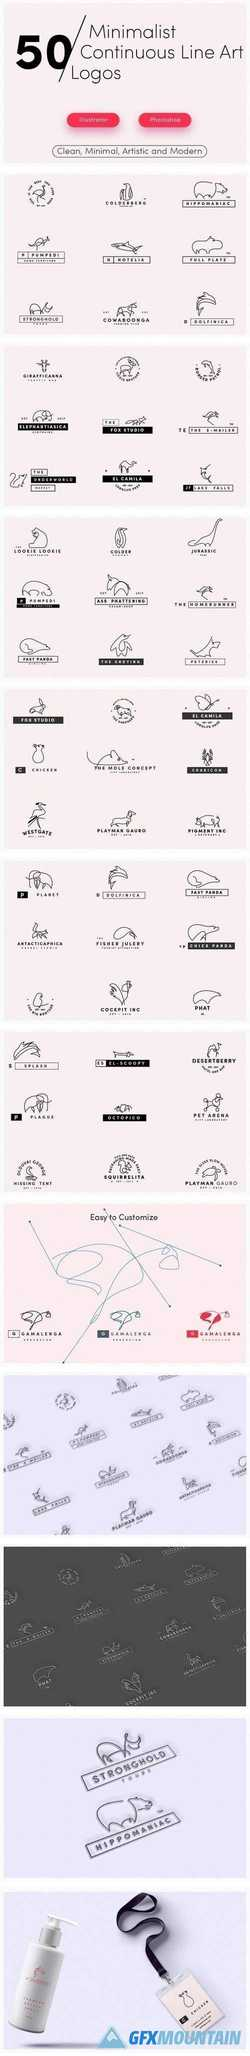 50 Premade Line Art Logo Bundle Pack 1800203